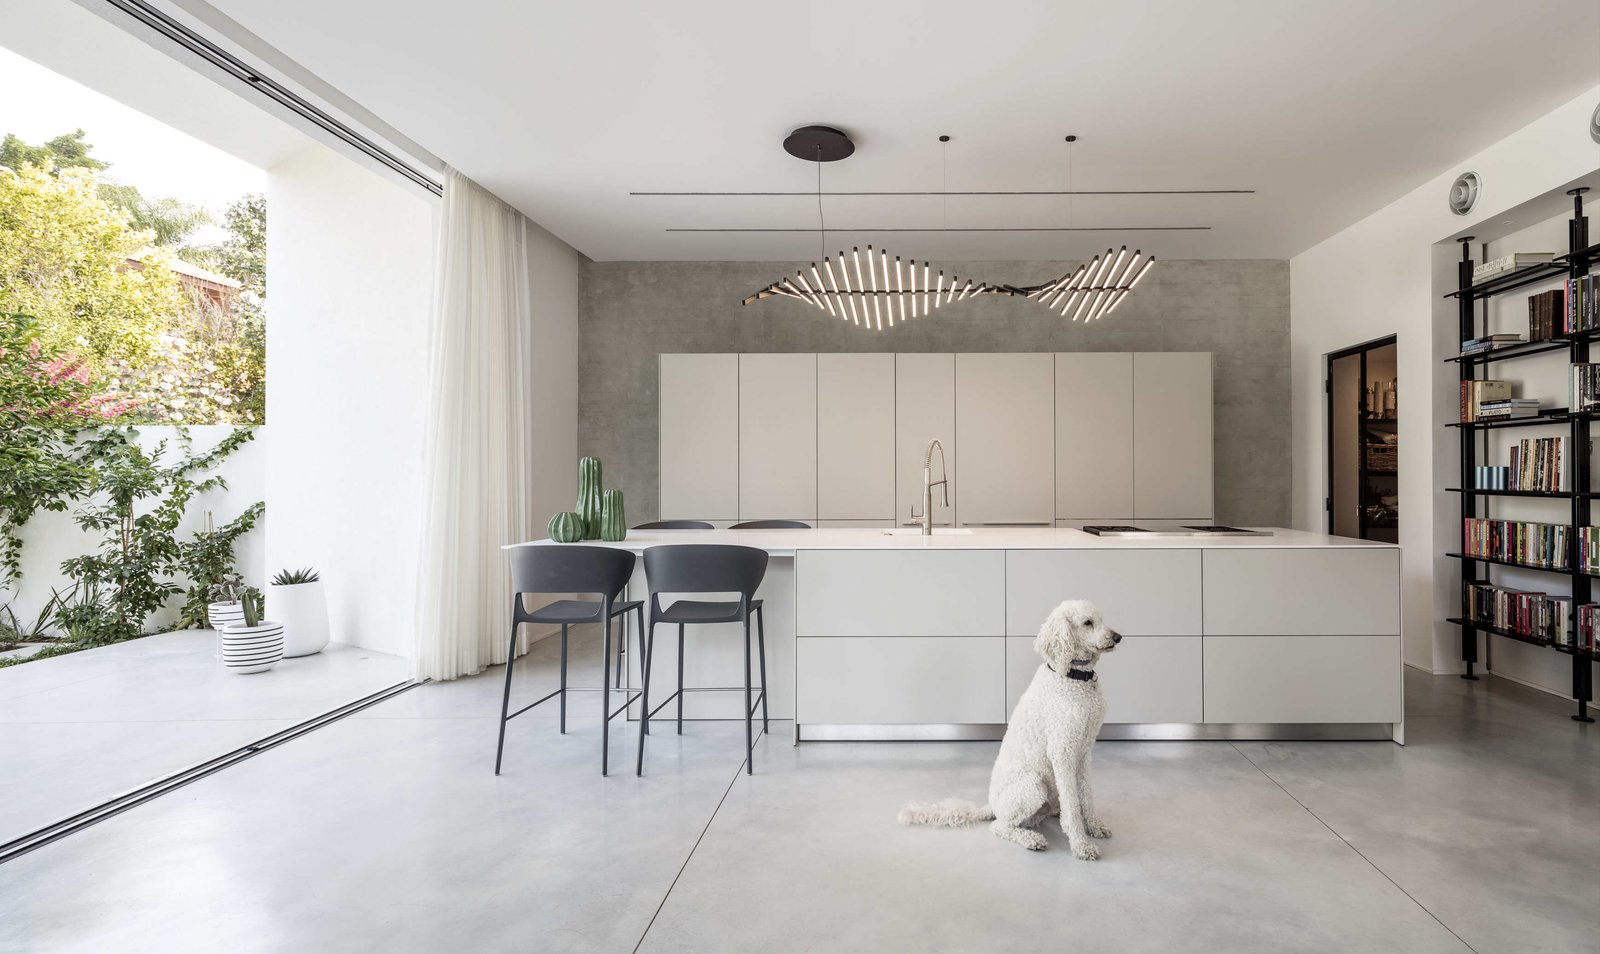 Kitchen, White Cabinet, Concrete Floor, Drop In Sink, Pendant Lighting, and Range The open interior of white walls and polished concrete floors echoes the restrained aesthetics of the façade.    Photo 7 of 19 in Sleek Concrete Cubes Form This Pavilion-Like Home in Israel